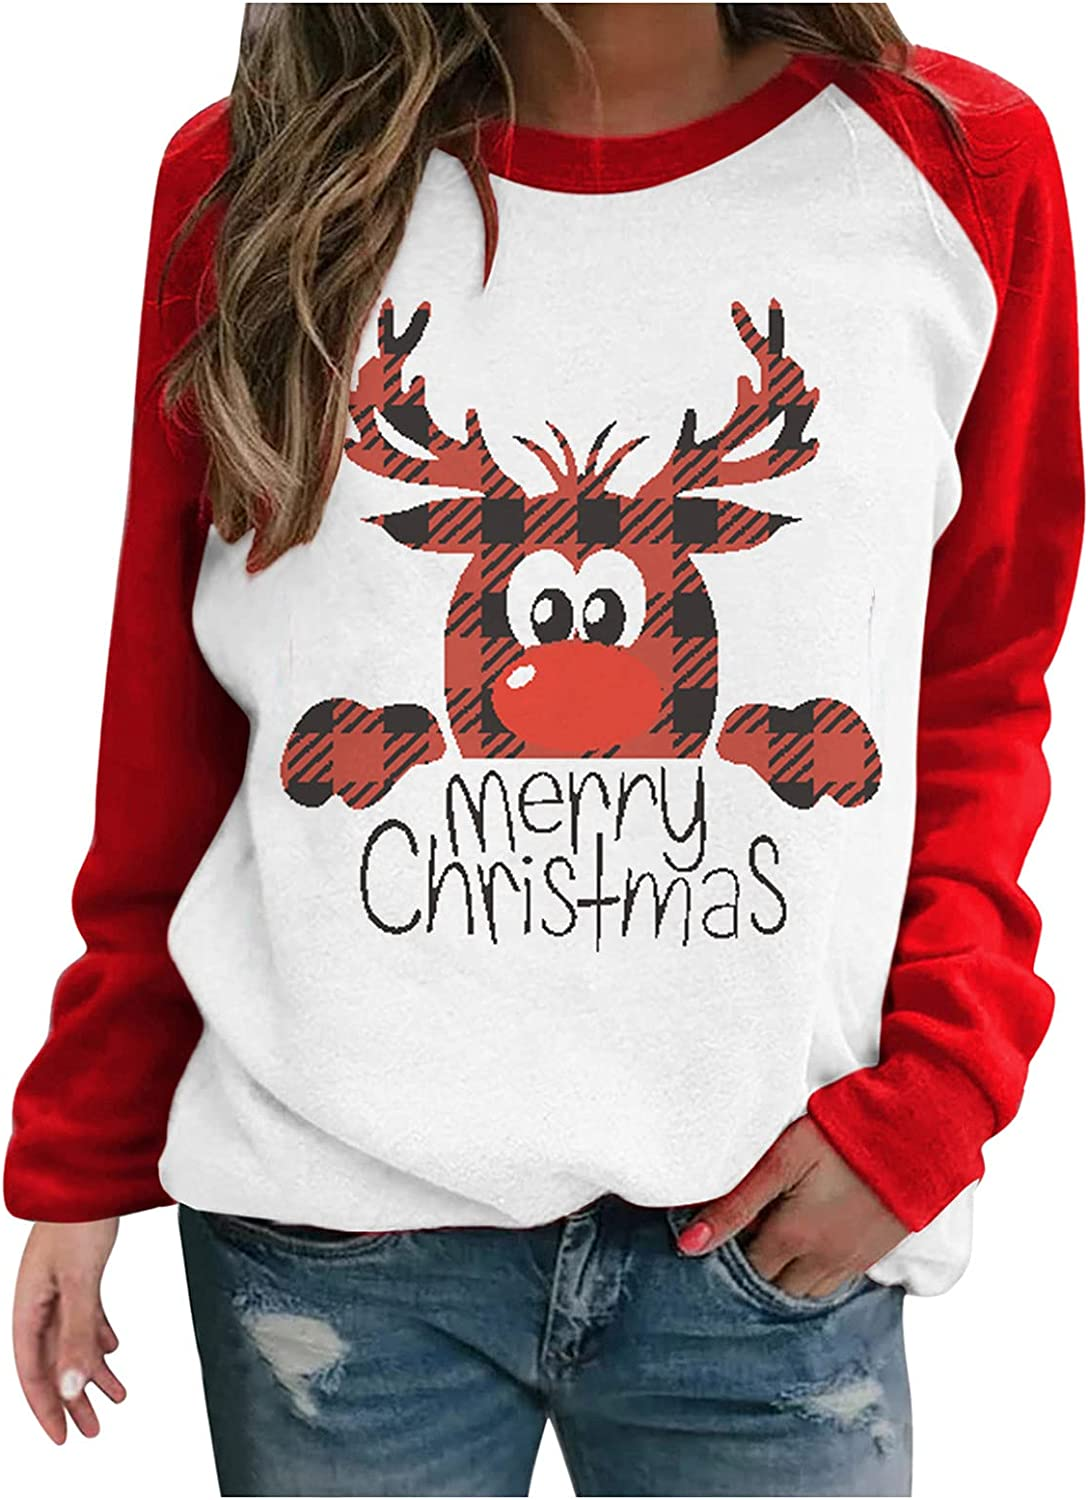 Going Out Tops for Women Christmas Autumn O-Neck T-Shirt Cute Cartoon Print Blouse Loose Leisure Pullover